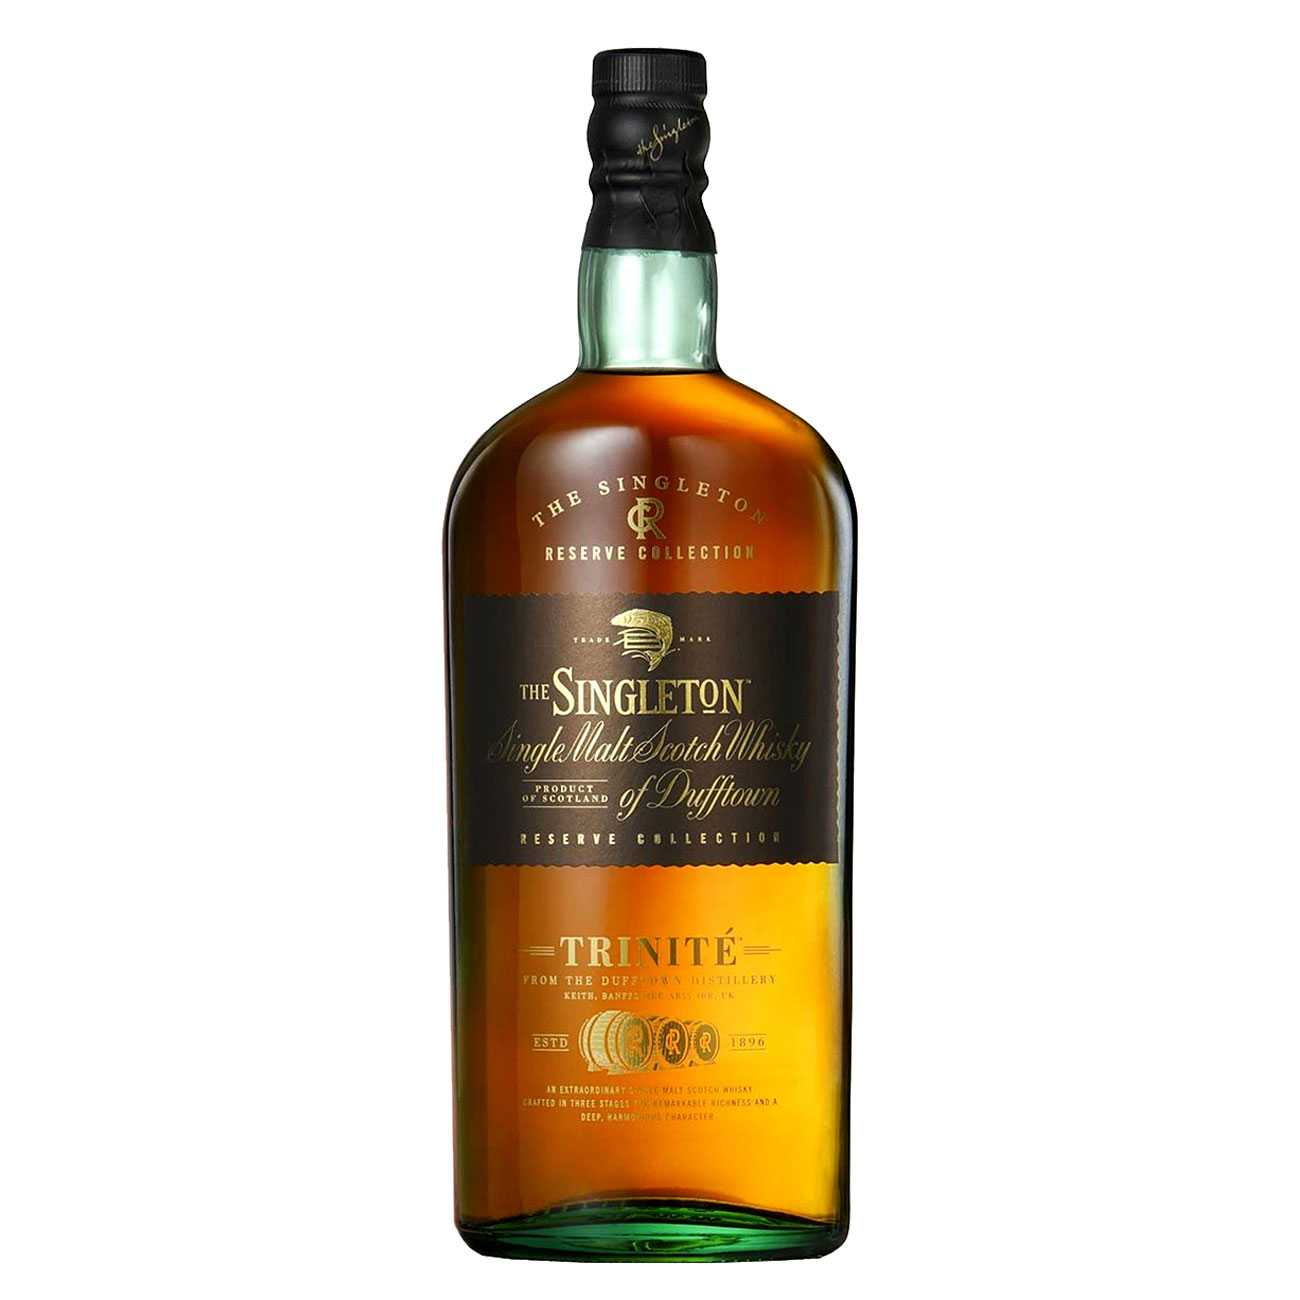 Whisky scotian, TRINITE 1000 ML, Singleton of Dufftown